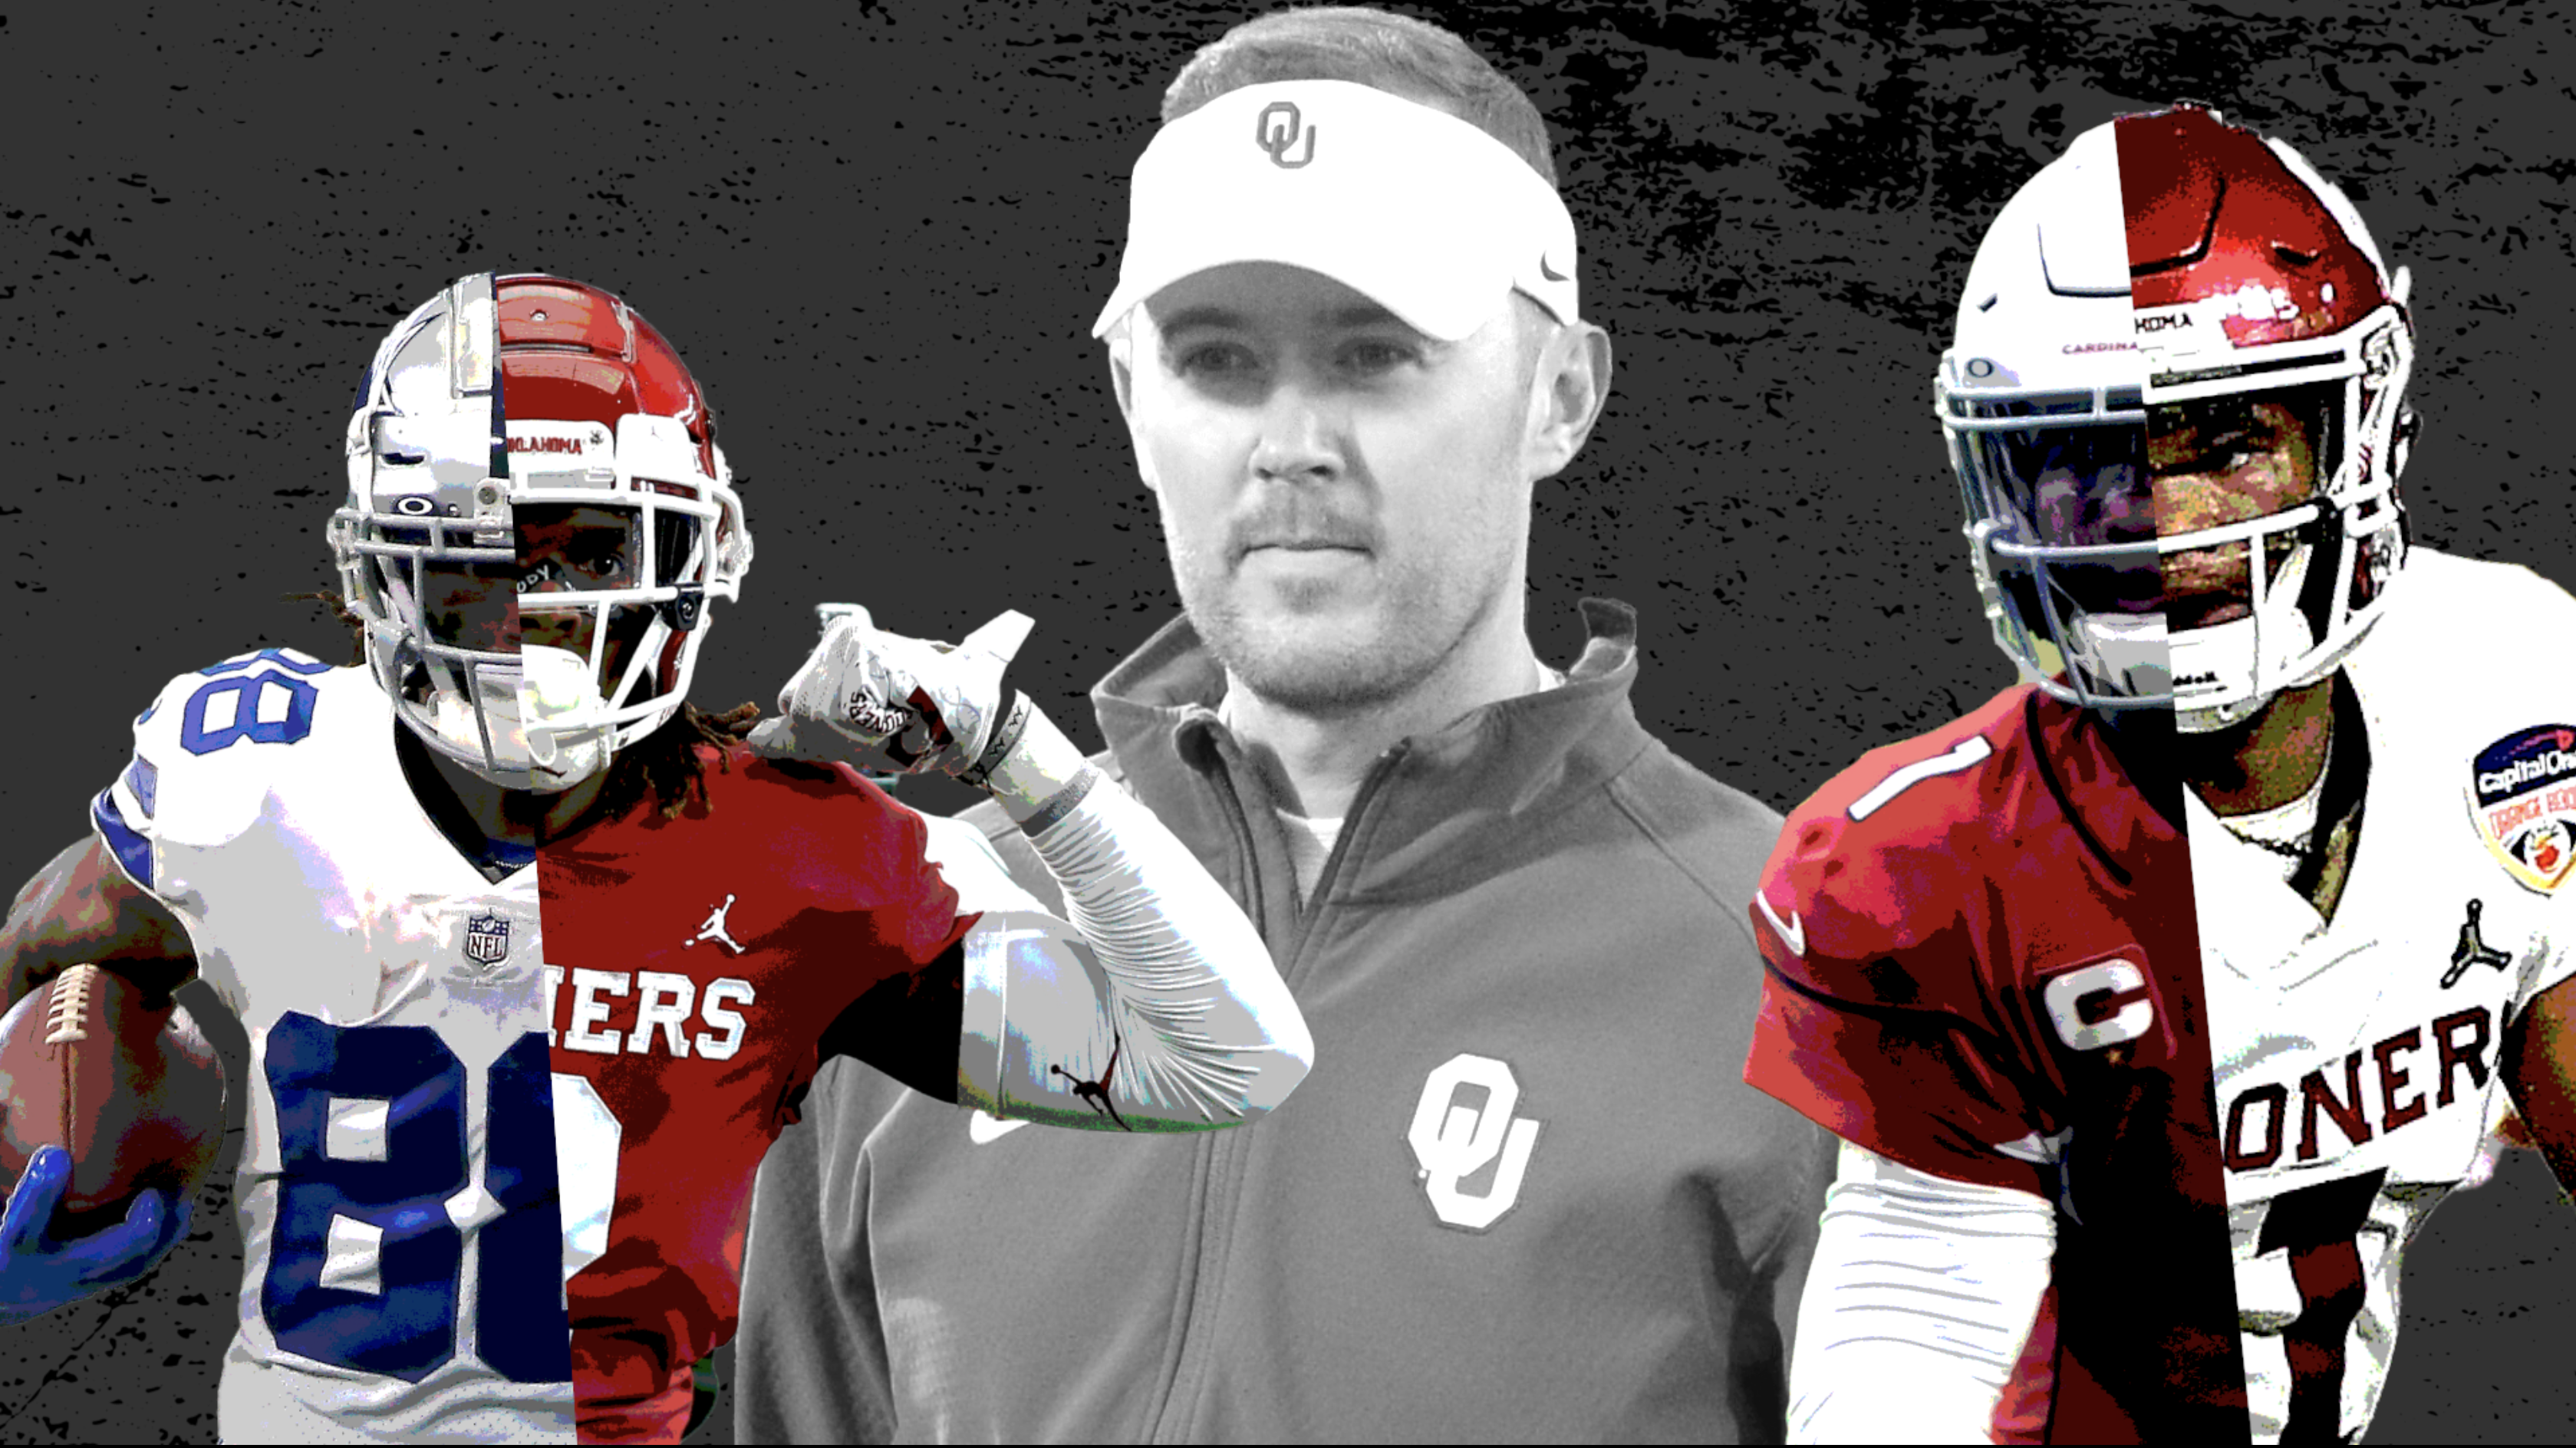 Lincoln Riley explains CeeDee Lamb, Kyler Murray's early NFL success: 'Moment's not too big'